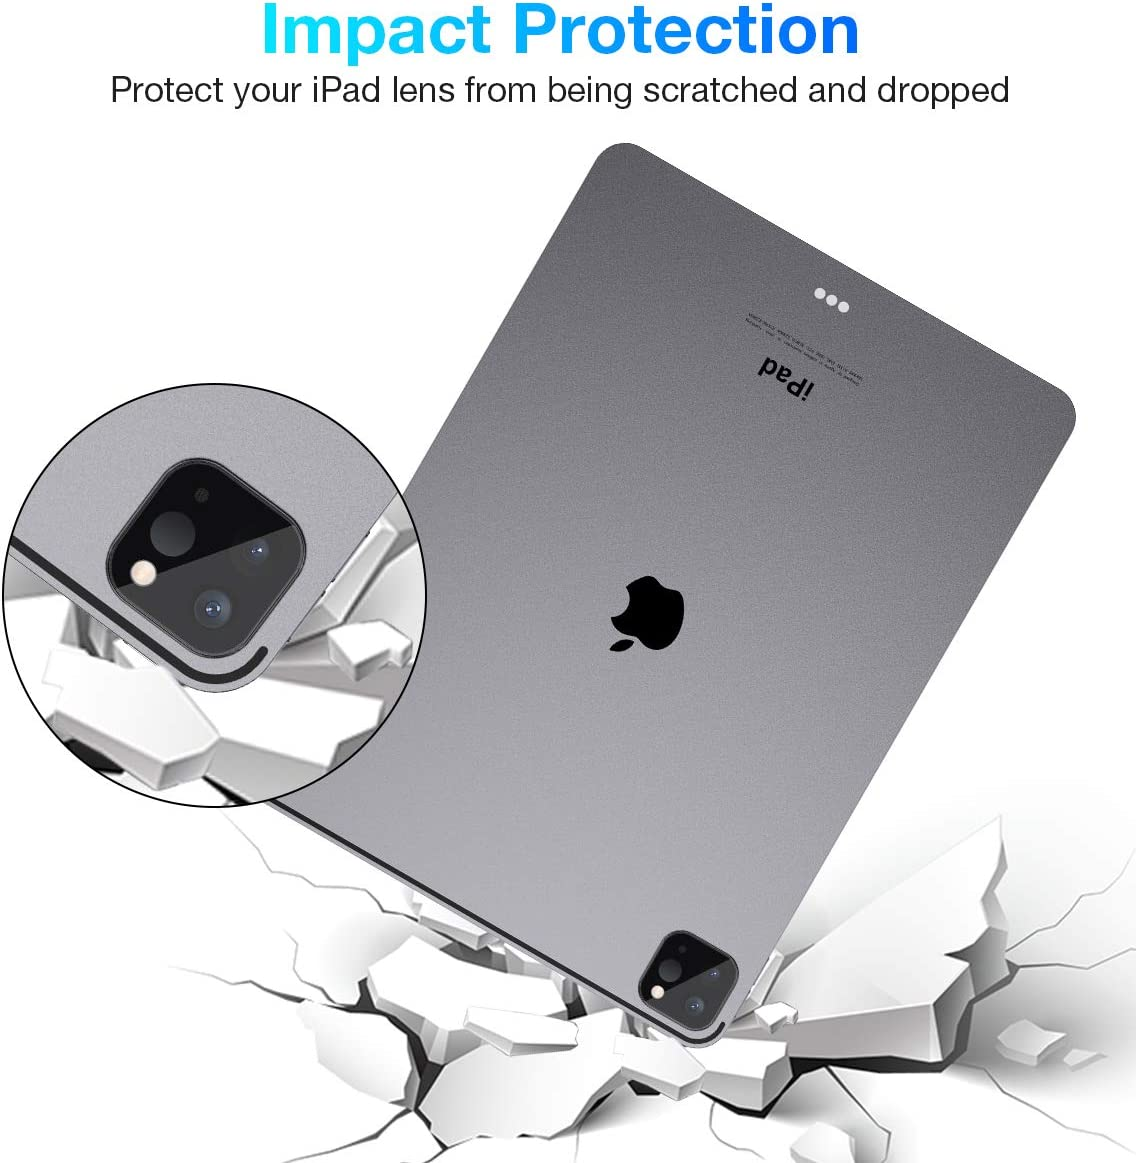 [3 Pack] Tensea for iPad Pro 12.9 11 2020 & 2021 Camera Lens Screen Protector, Anti-Overexposure Design, Tempered Glass iPad Pro 12.9 11 inch Screen Protector for Camera Lens, HD Clear, 3 Pack